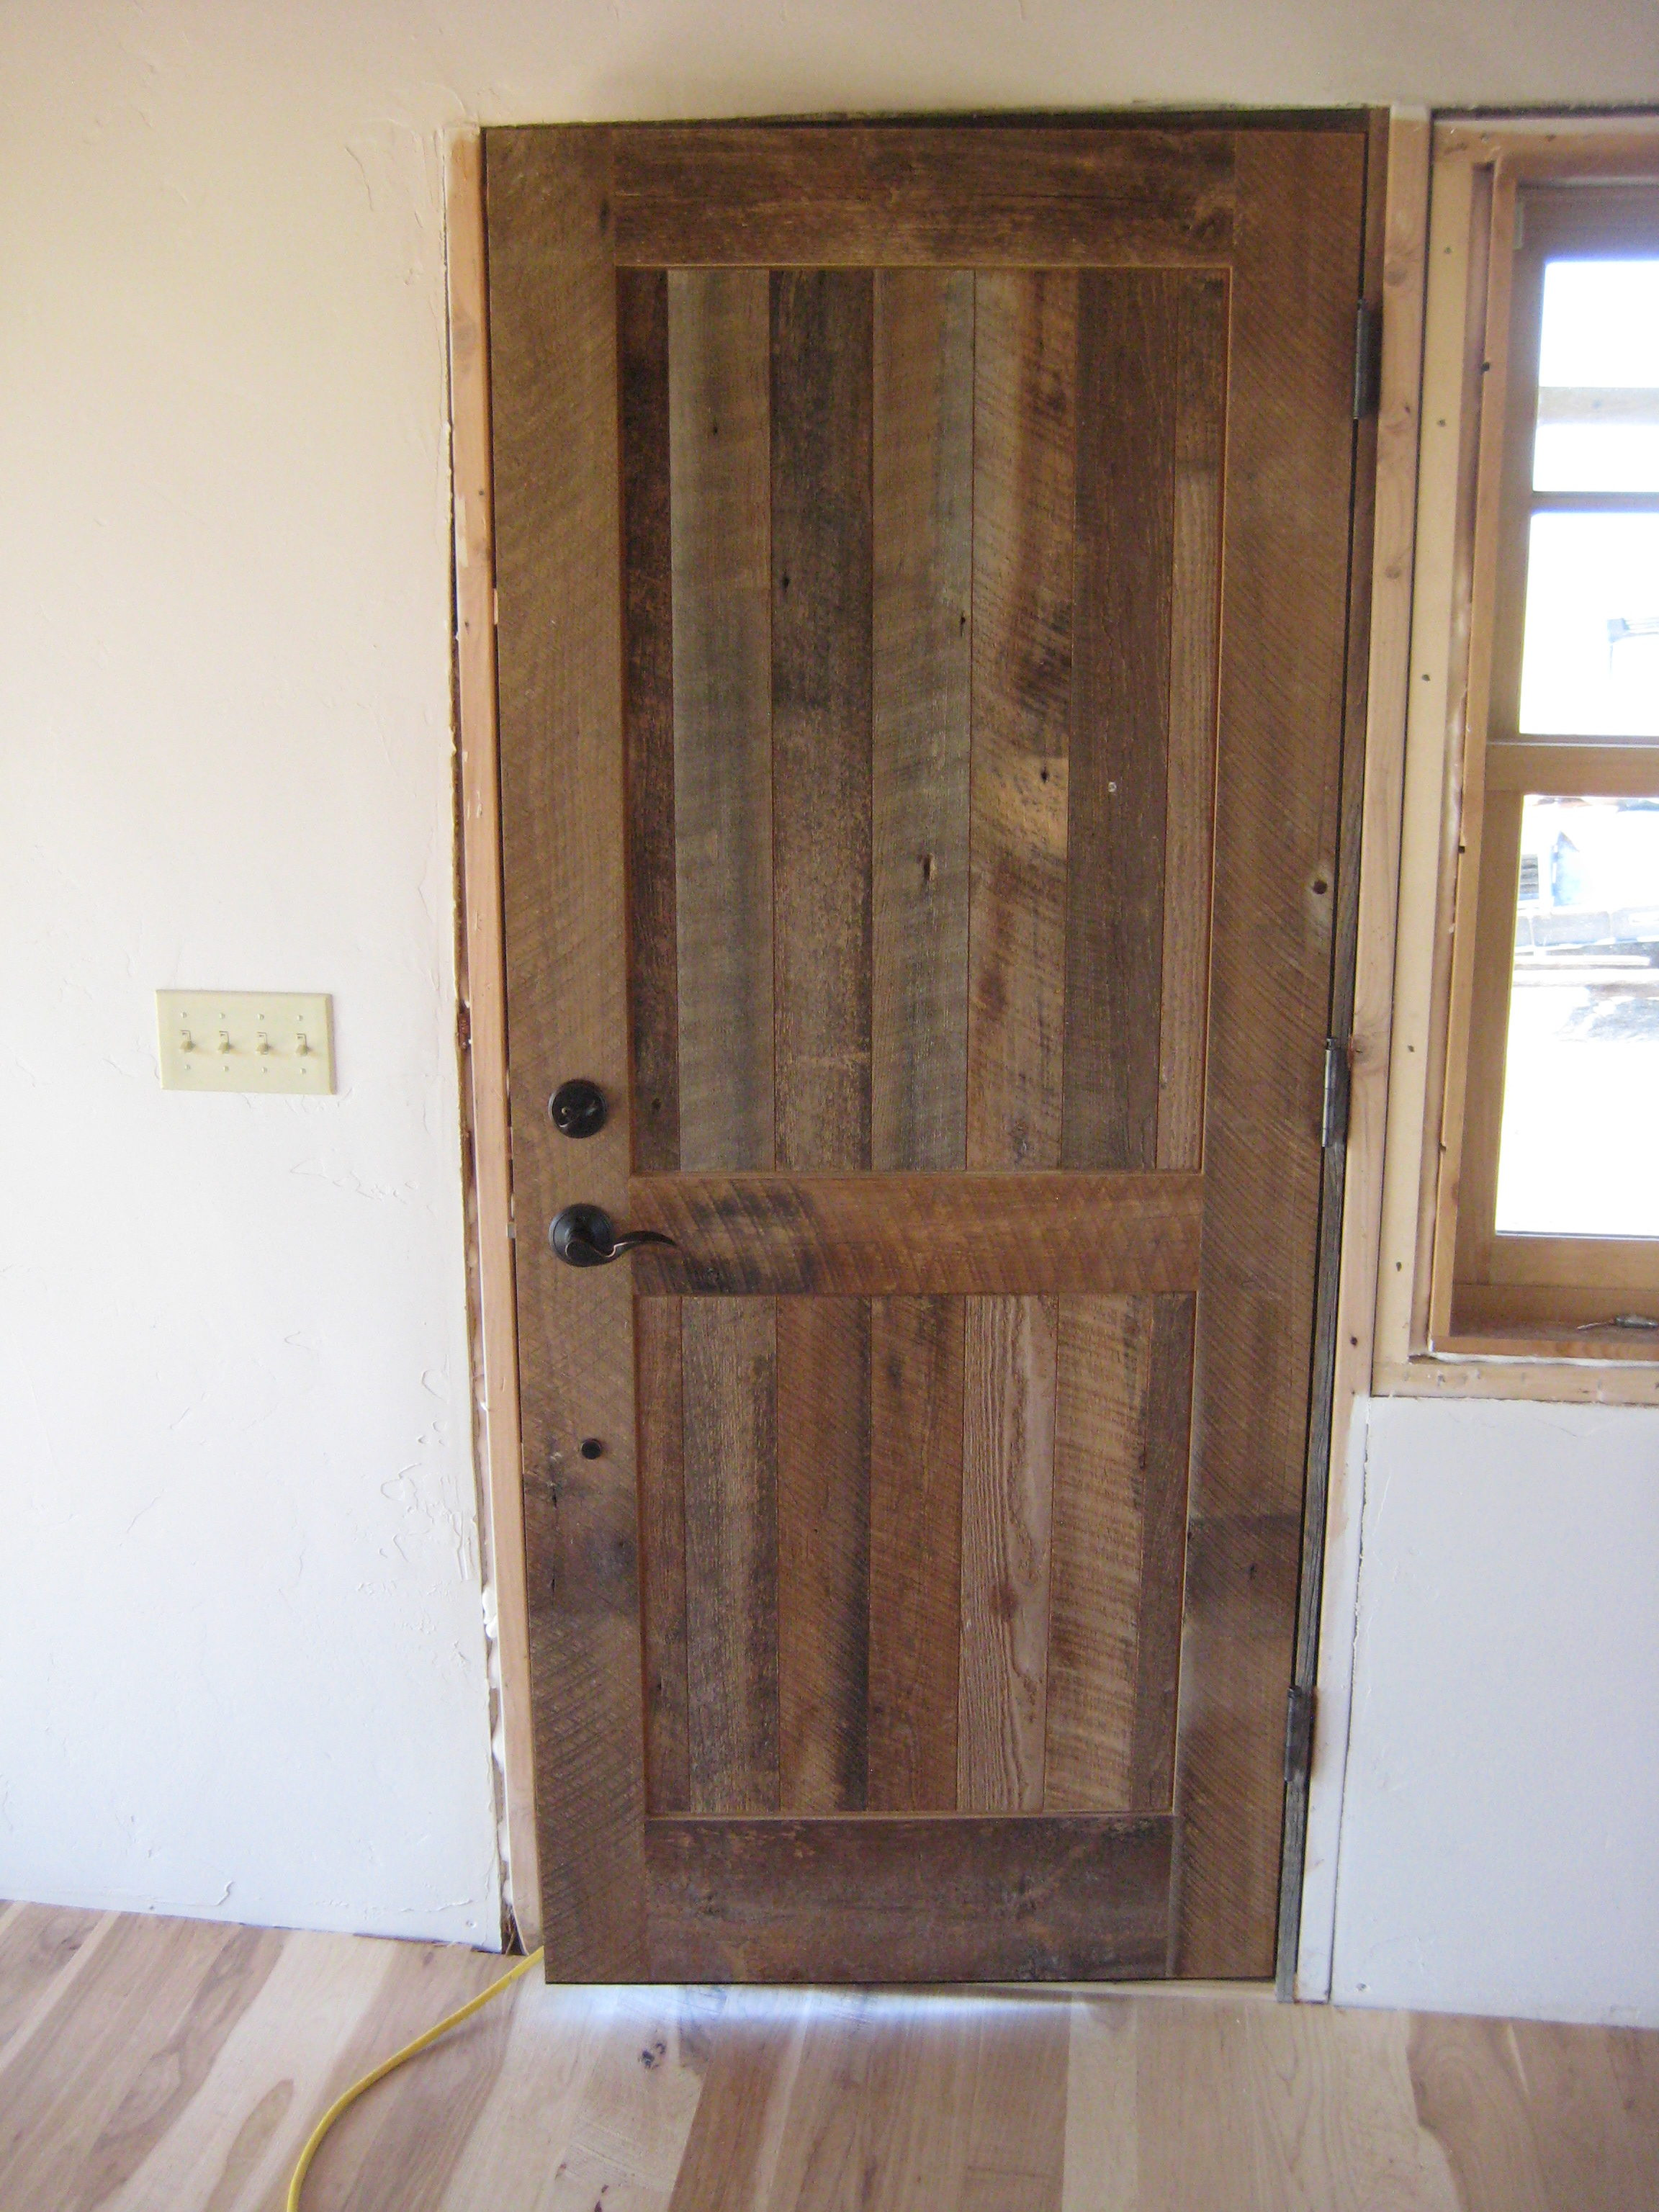 New doors were made were needed from reclaimed barn wood